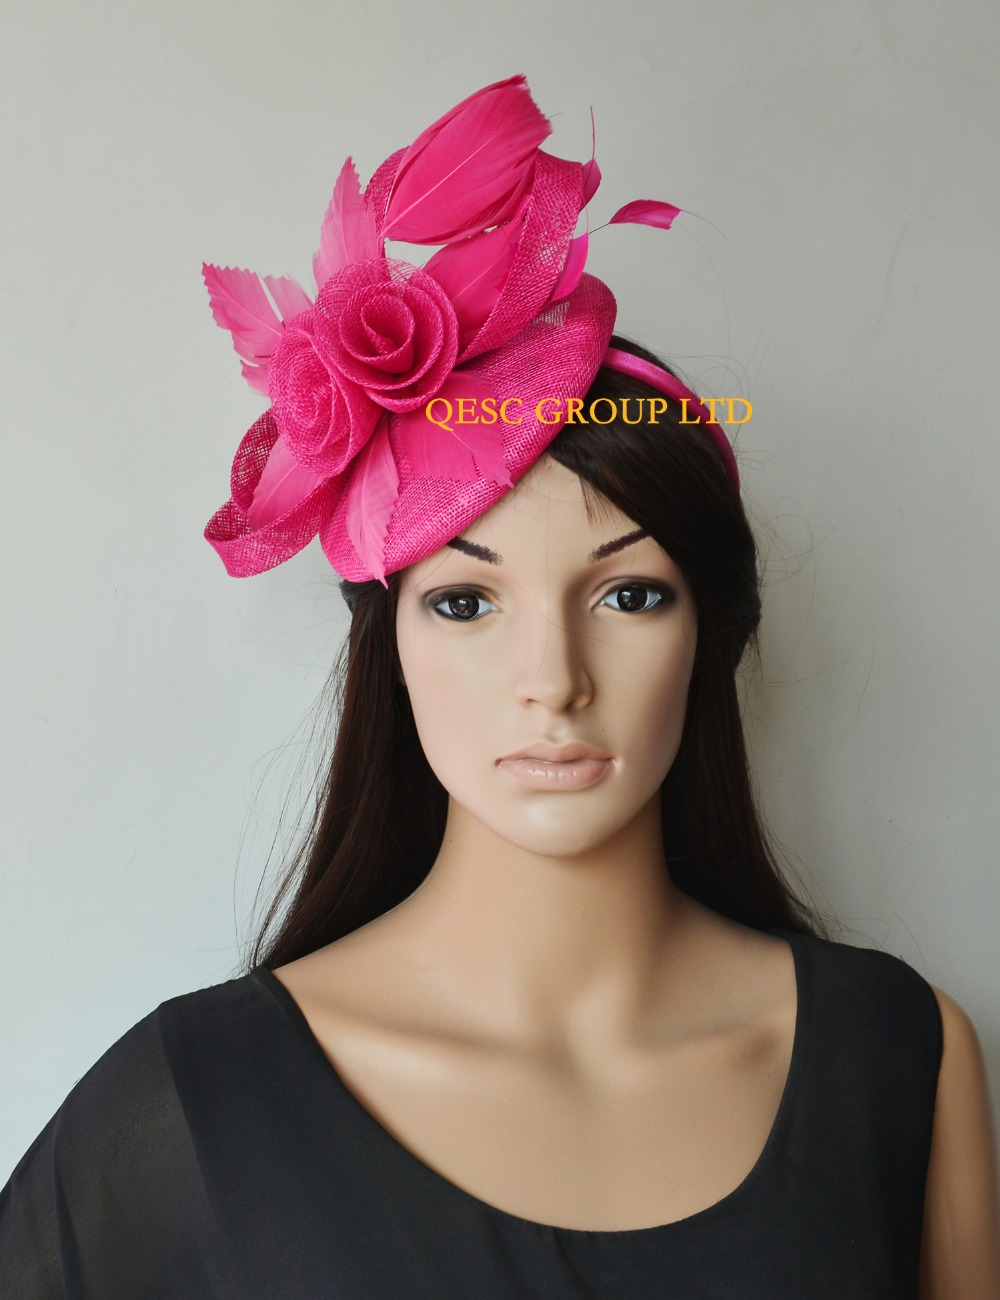 NEW 8 colours Hot pink fuchsia Feather Fascinator Kentucky derby Hat  sinamay fascinator hat for Melbourne Cup 25a71a9020b